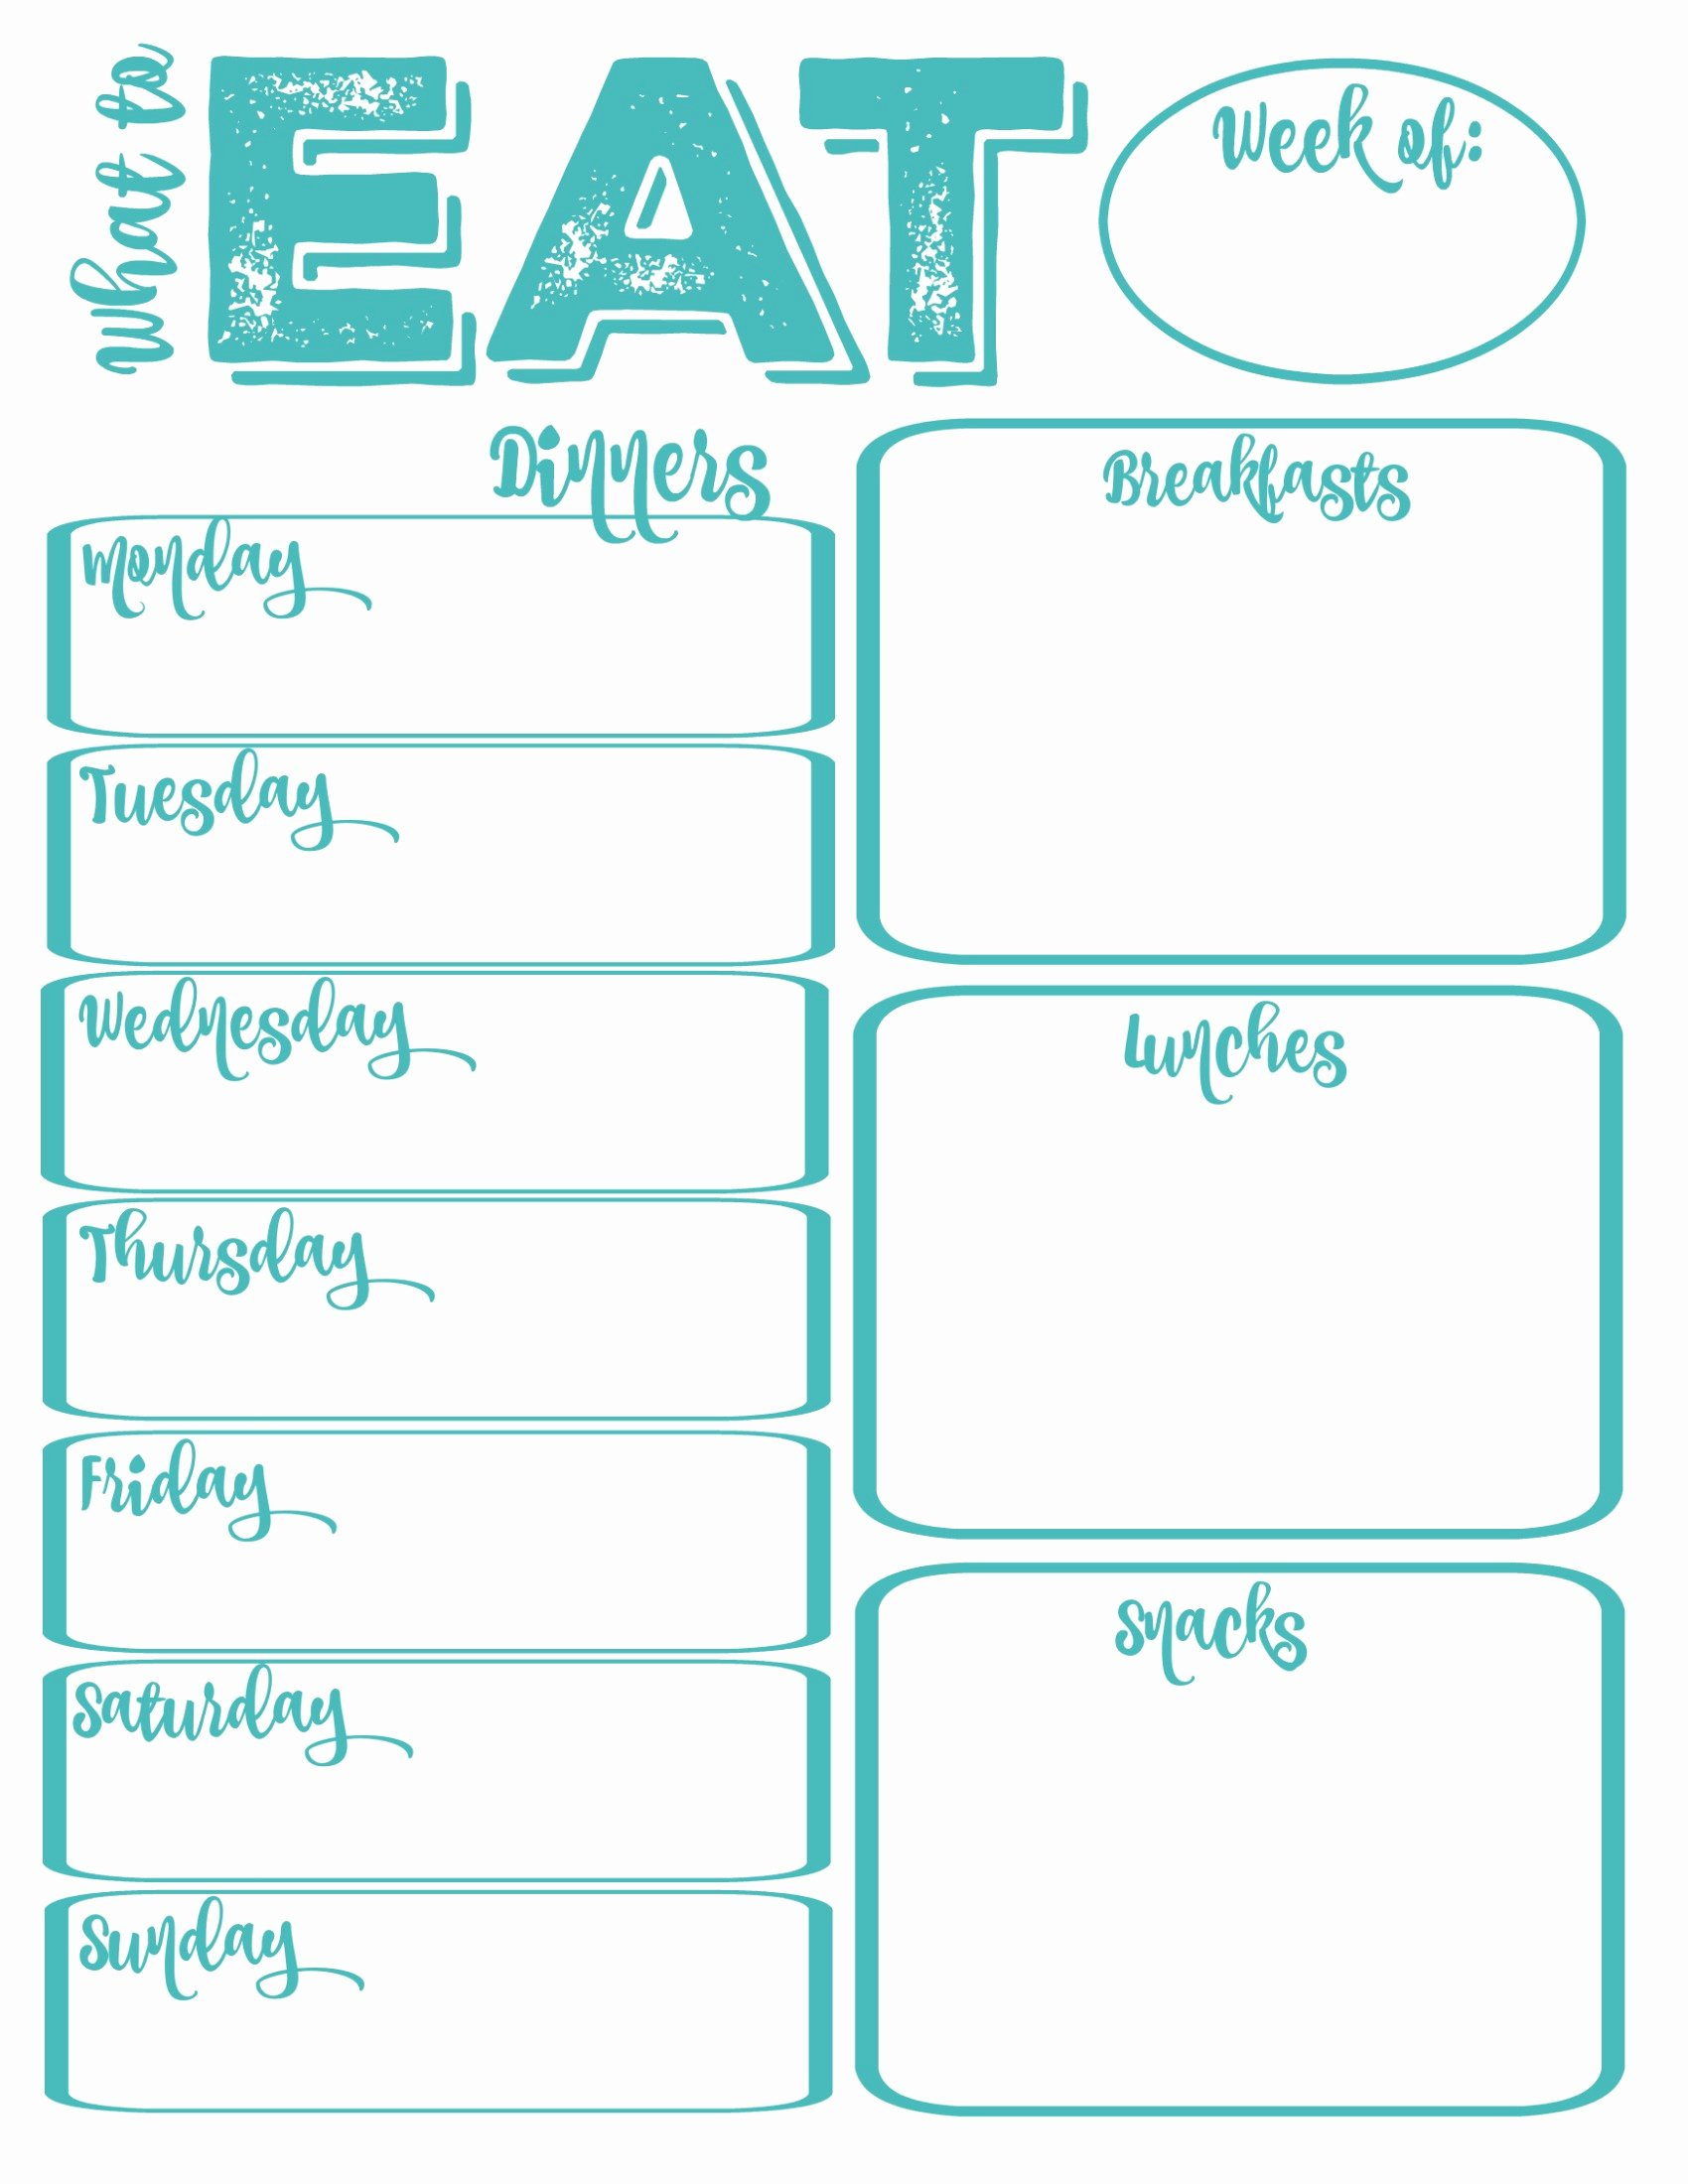 Free Meal Plan Template Elegant Pantry Makeover Free Printable Weekly Meal Planner and